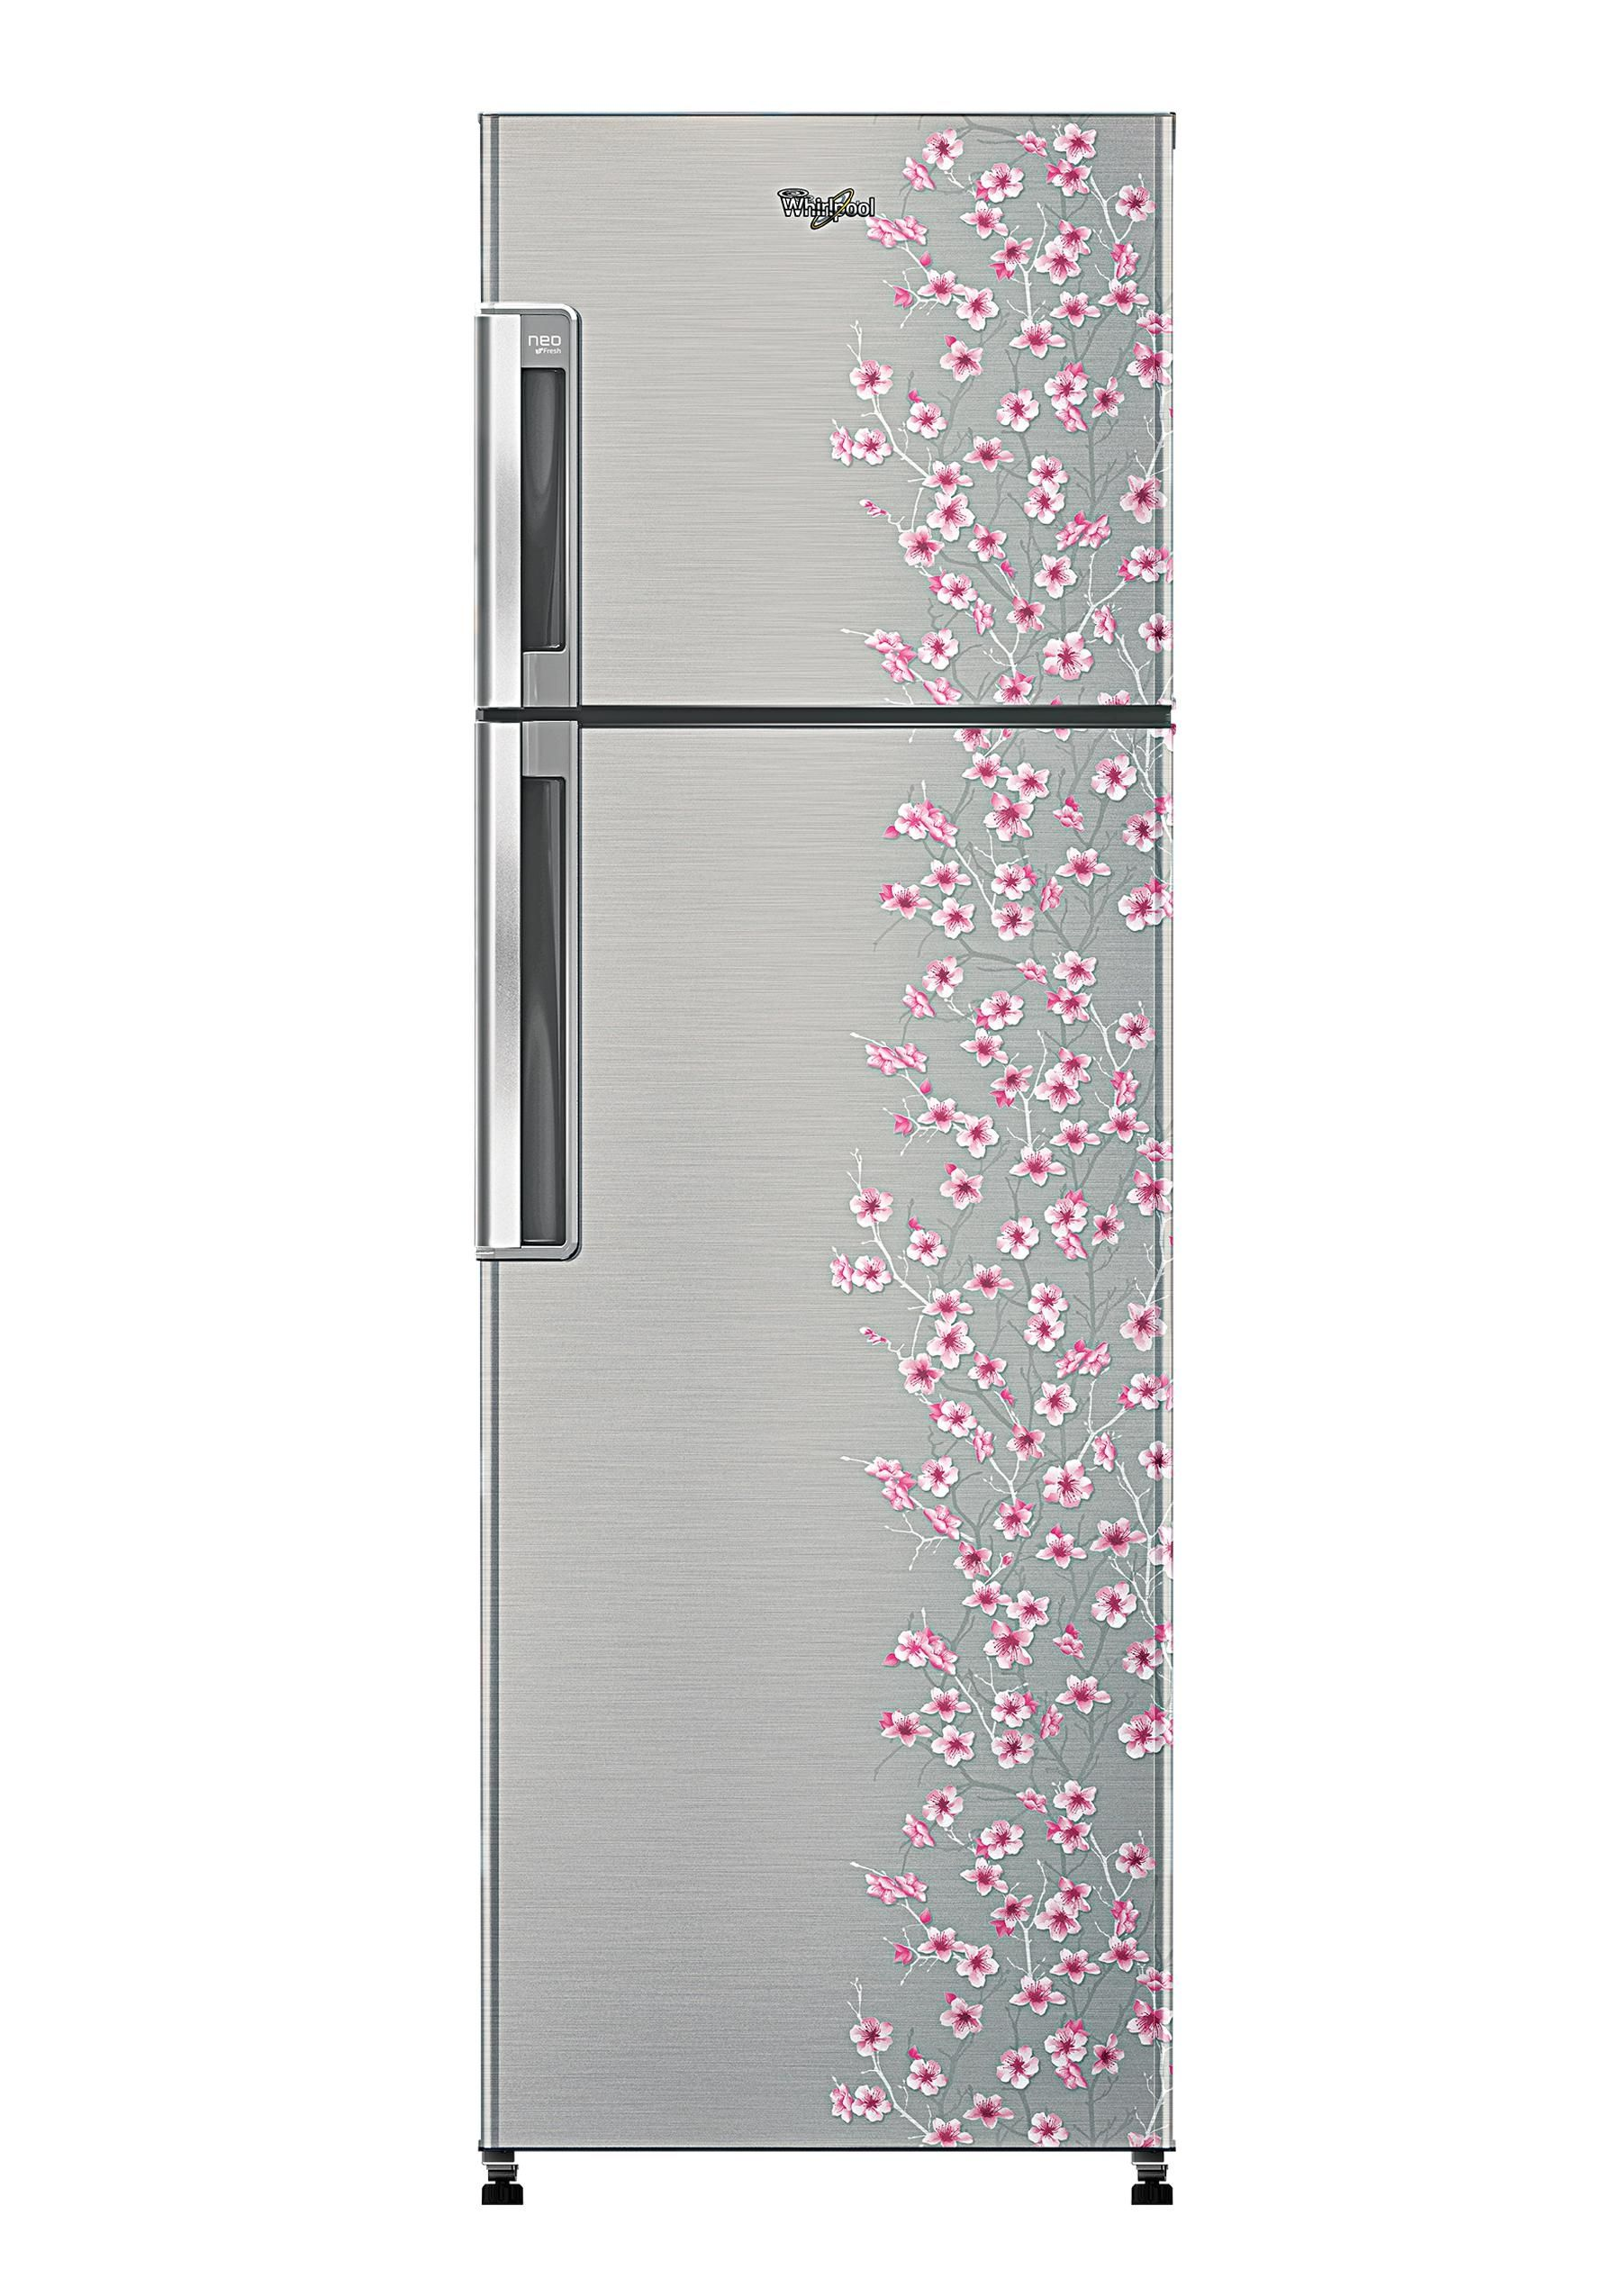 Buy Whirlpool Double Door Refrigerator Online Pune Buy Whirlpool